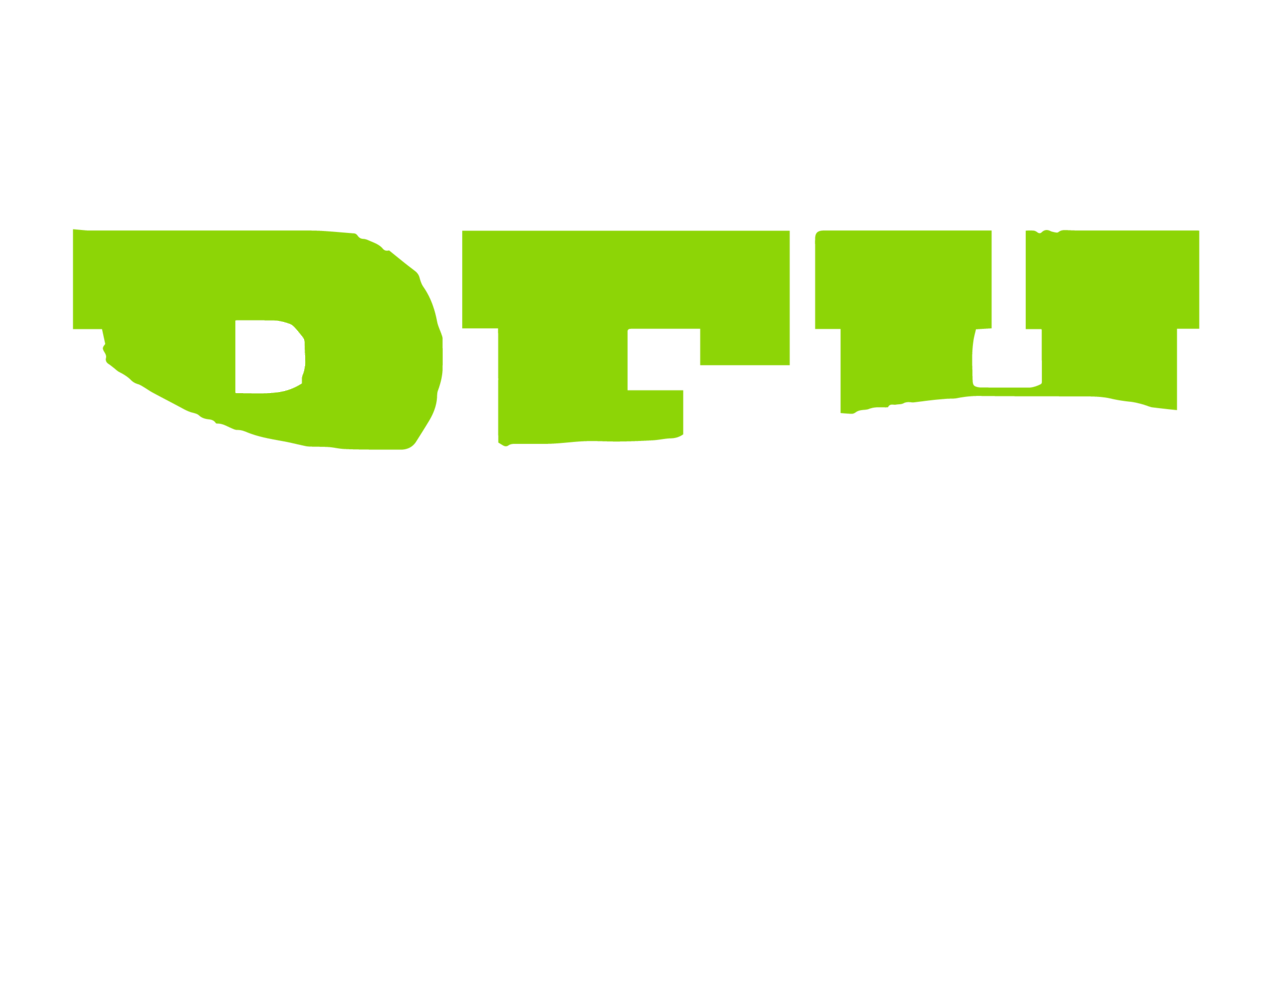 Potomac Field Hockey